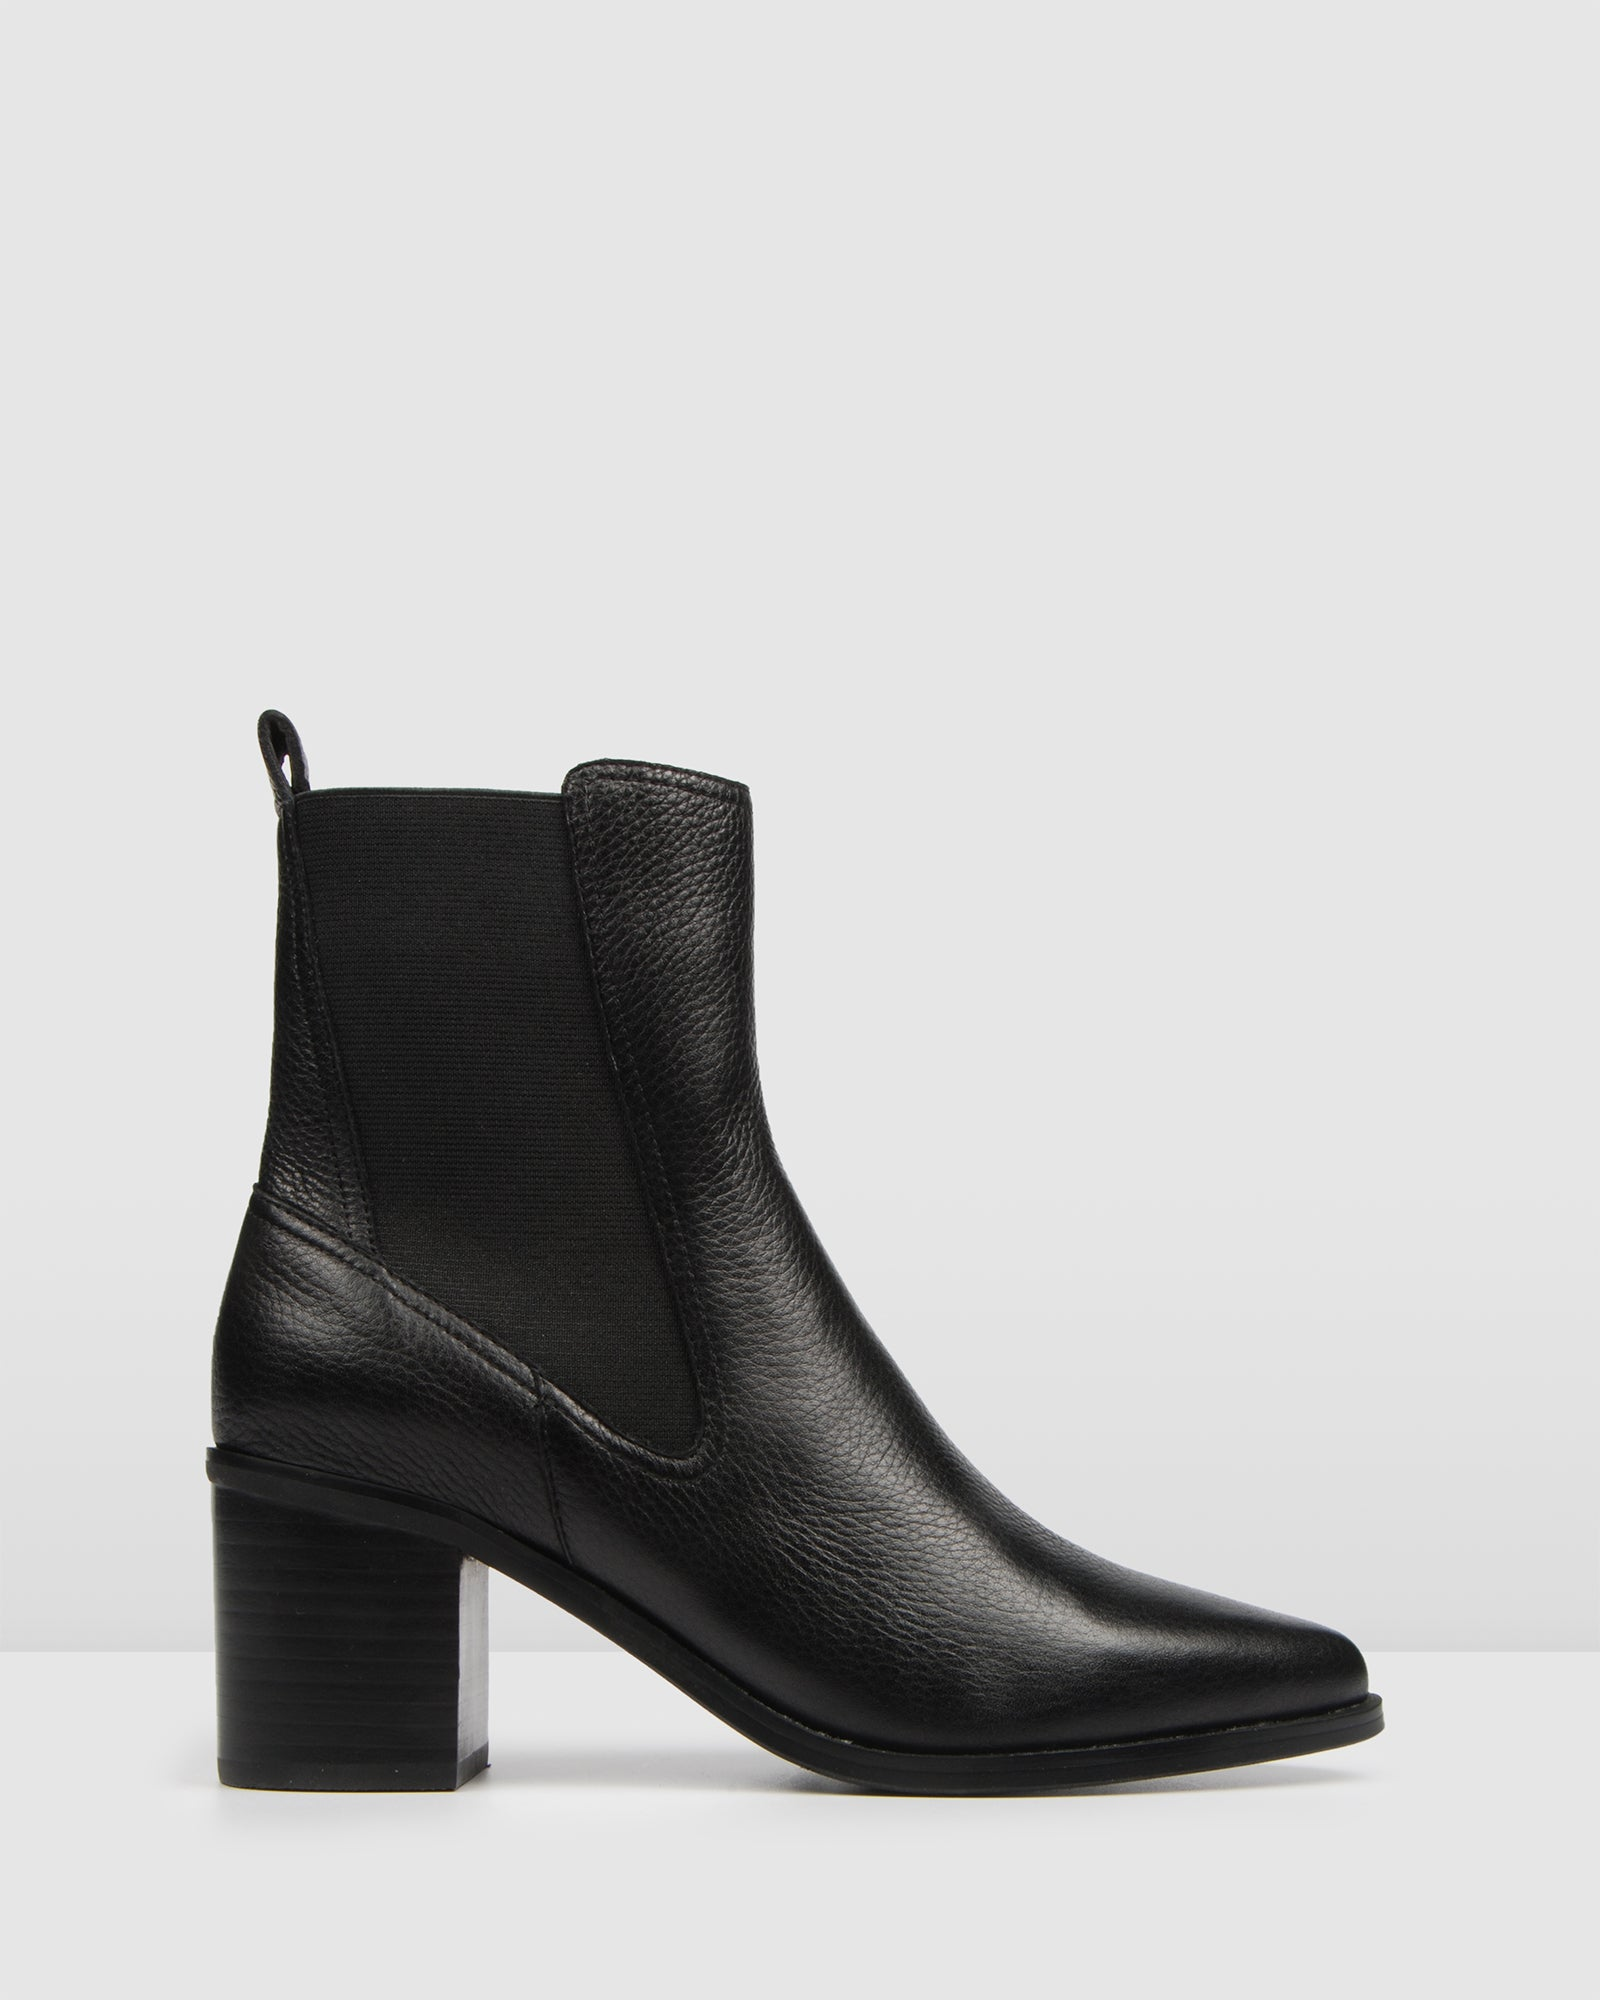 ACE MID ANKLE BOOTS BLACK LEATHER - Jo